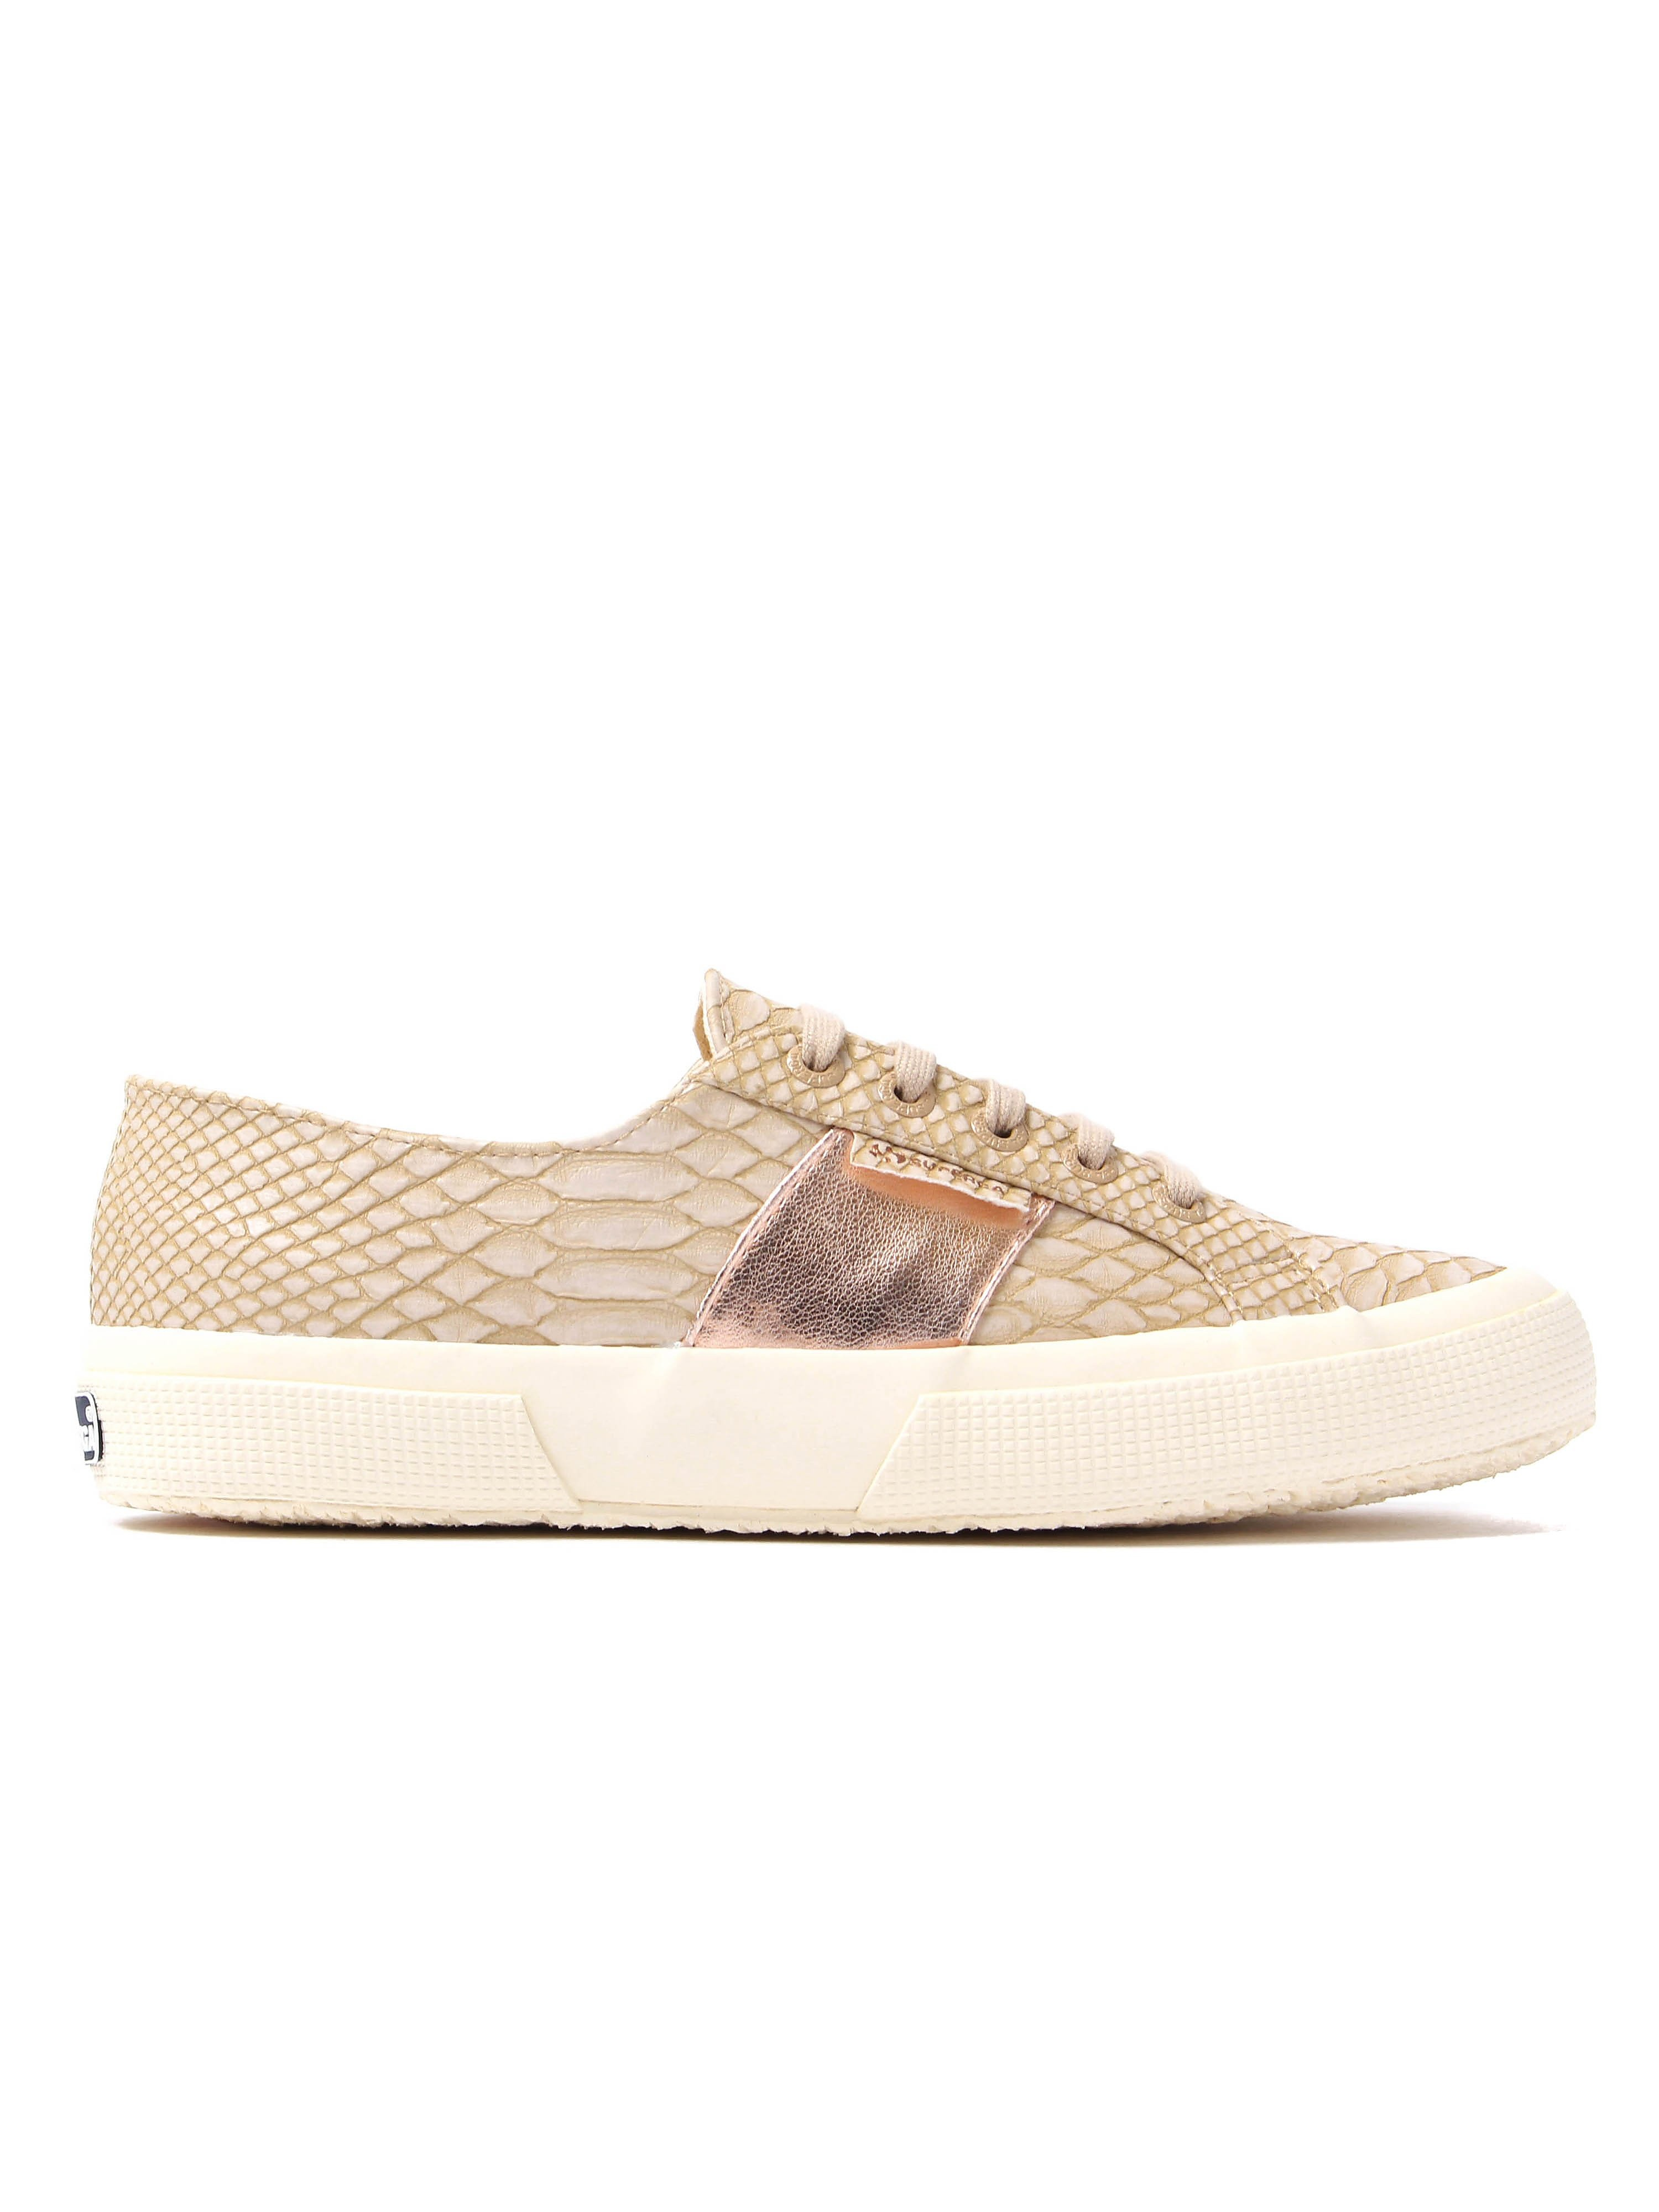 Superga Women's 2750 Snake Trainers - Nude